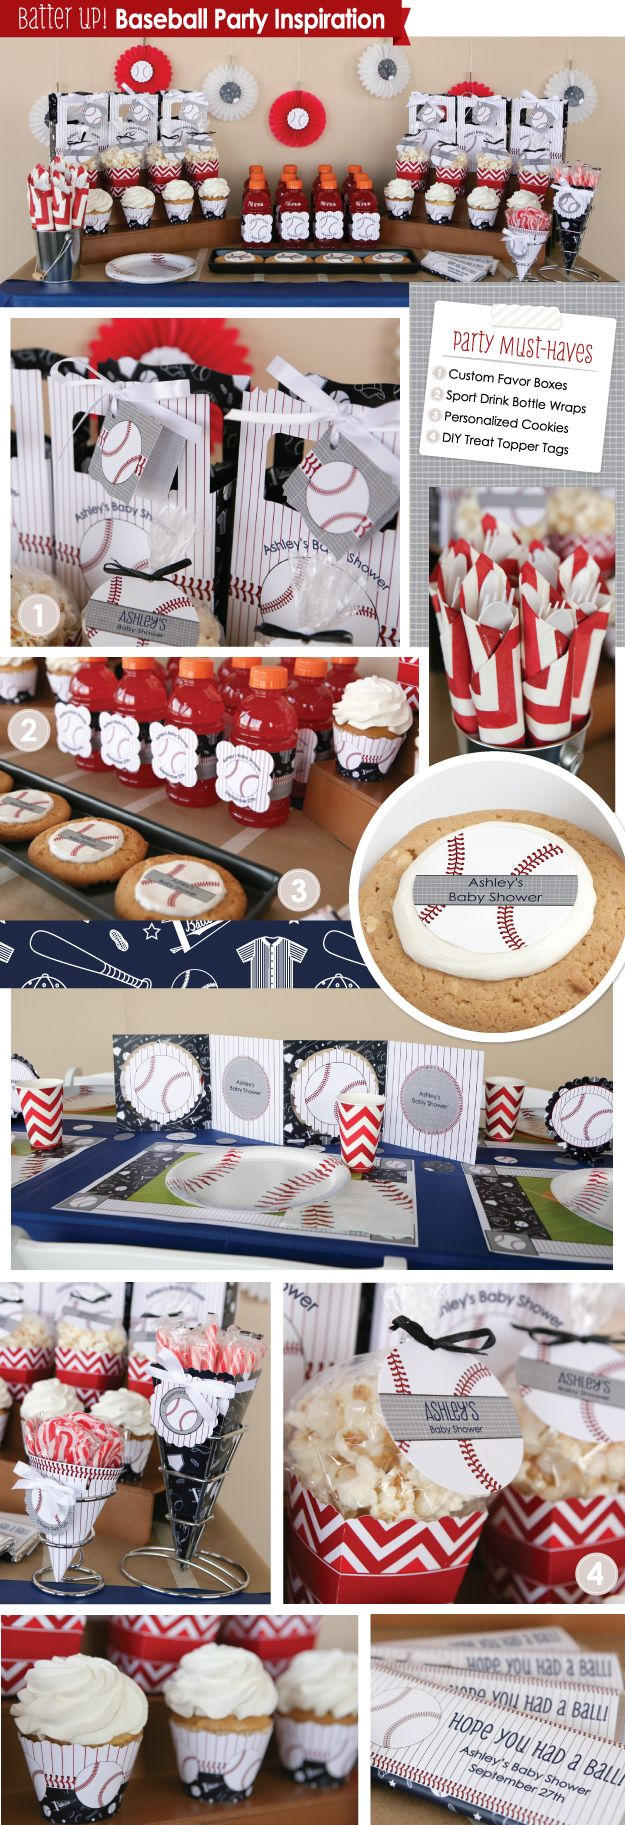 Baseball Party Inspiration Board - Mood Board | DIY Party Decorations - Decorating with a  Baseball Theme #BigDot #HappyDot Baseball Party Supplies